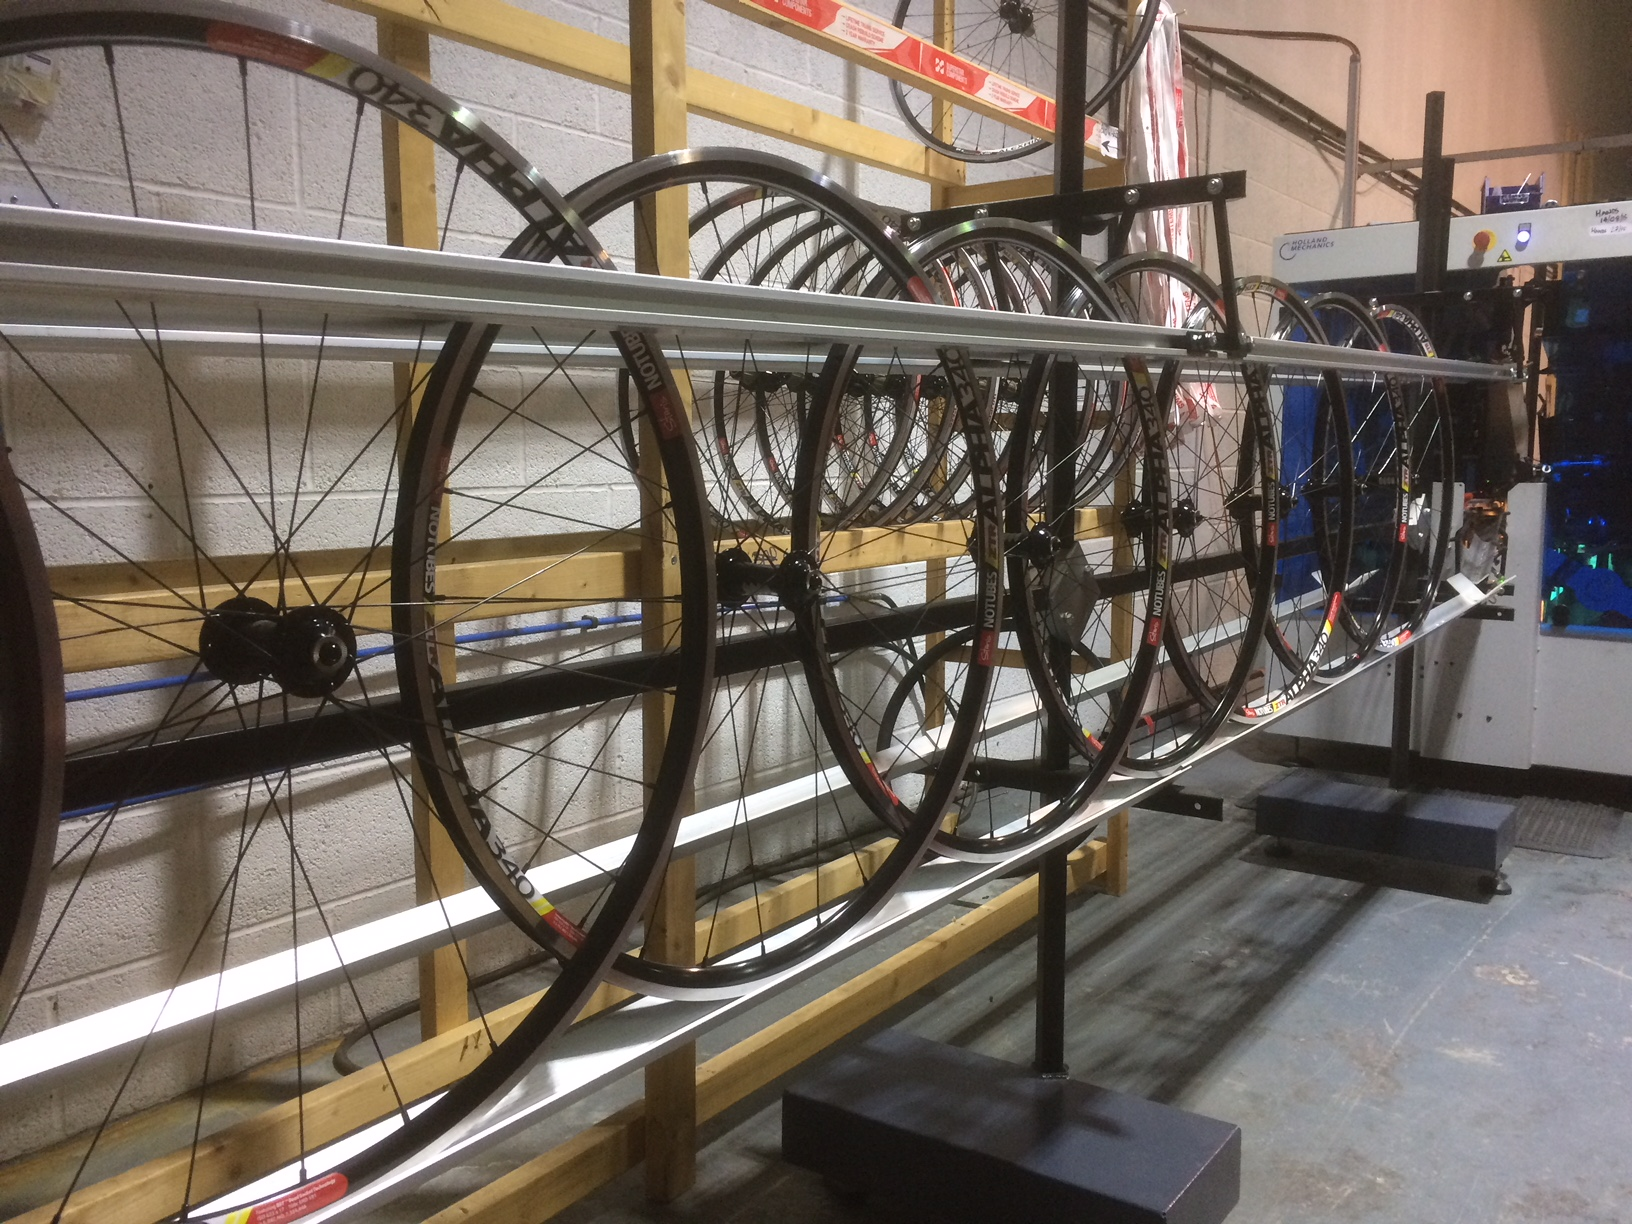 Wheelbuilding - Our wheel building line is the most advanced available. We can build consistent precision quality wheels in high volume to meet your requirements, with short lead times.MOQ - 100 pairsPrice: cheaper and faster than shipping from Asia